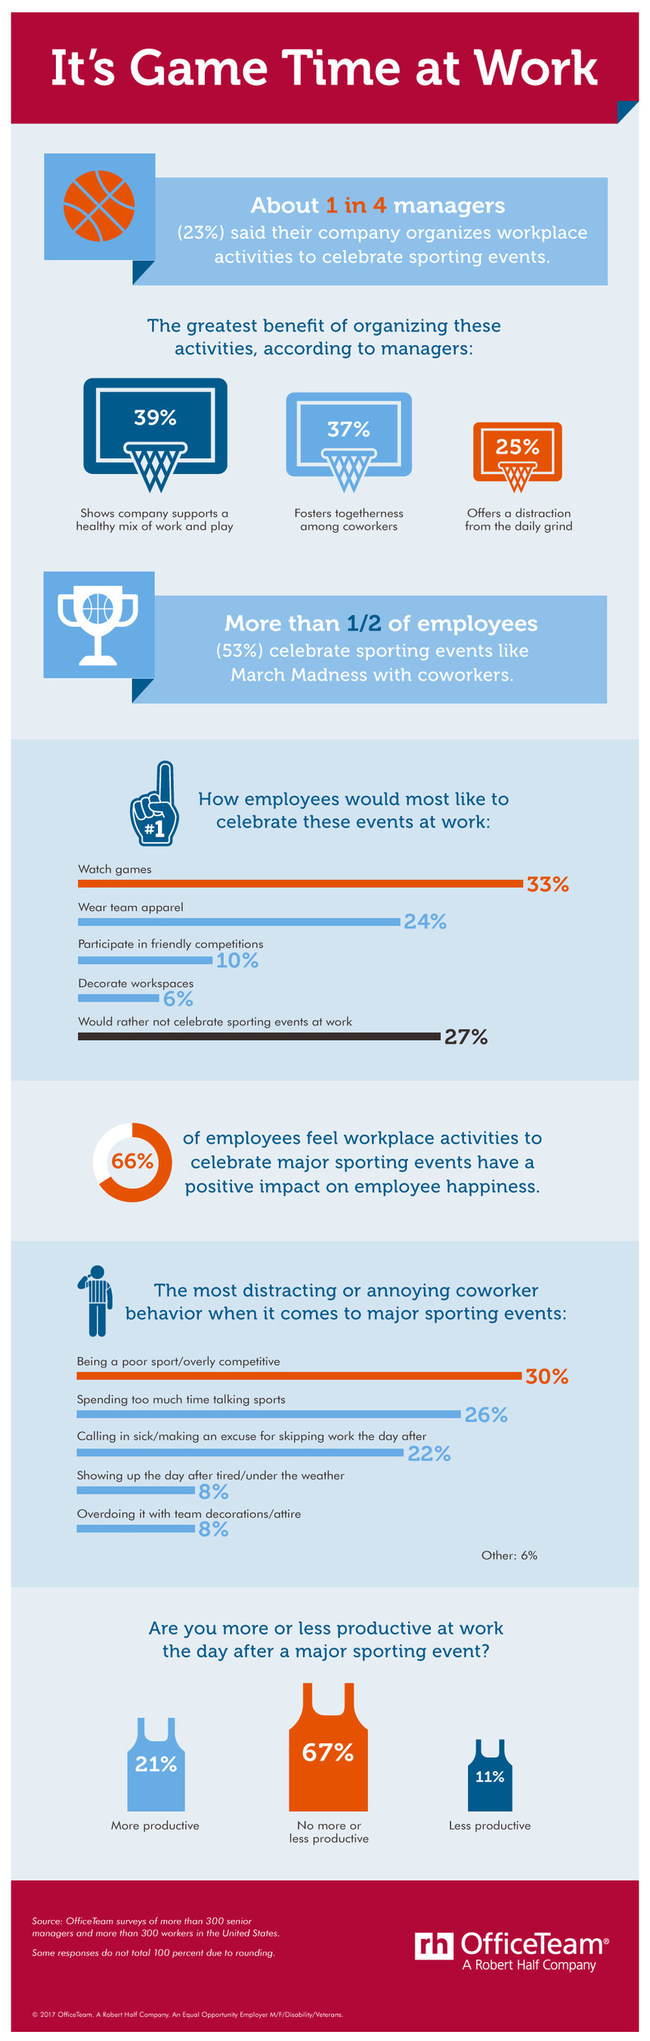 Nearly 1 in 4 senior managers (23%) surveyed by OfficeTeam said their employer organizes activities tied to sporting events like March Madness. Among those whose firms do get into the games, the top benefit is showing the company supports a healthy blend of work and play (39%), followed by building camaraderie among colleagues (37%). Check out additional stats about March Madness at work.